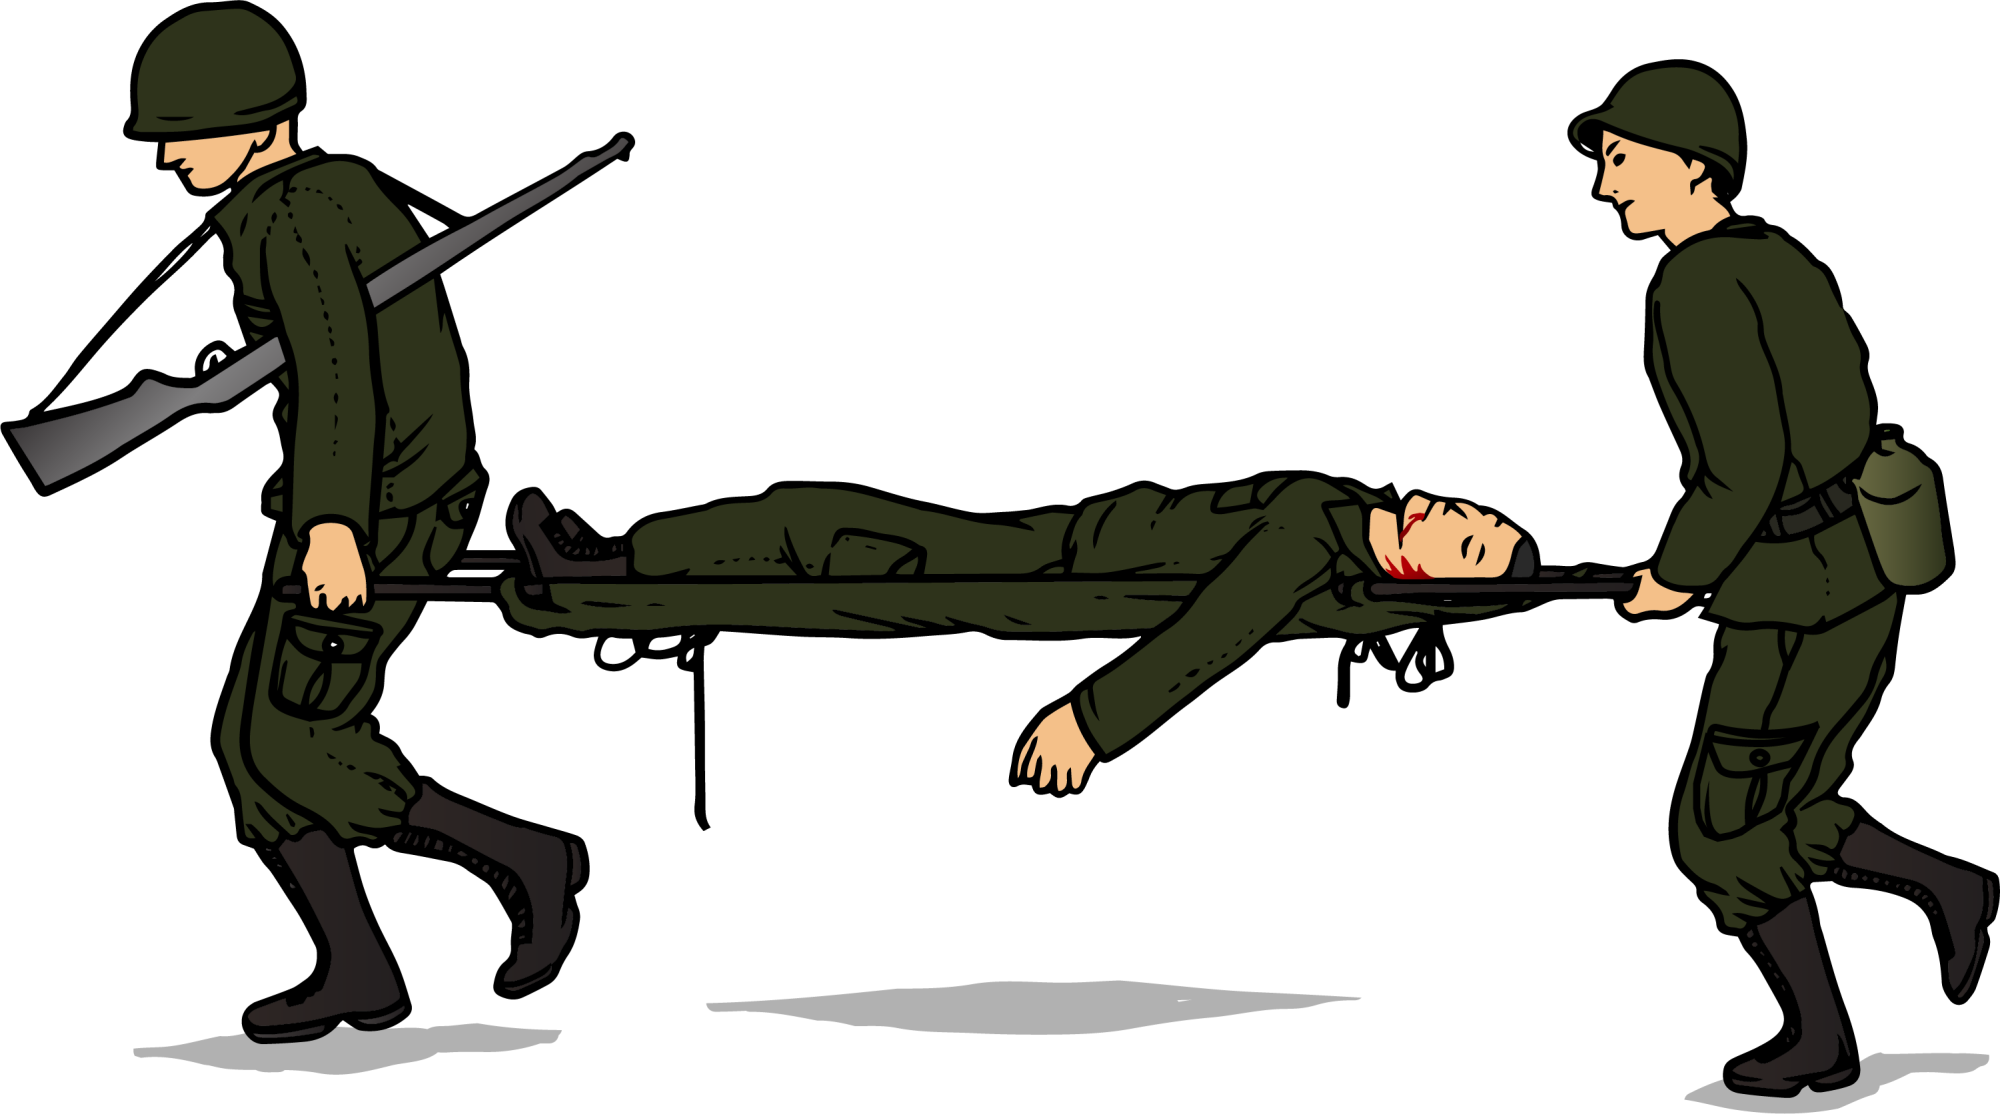 Soldier military clip art. Soldiers clipart army officer